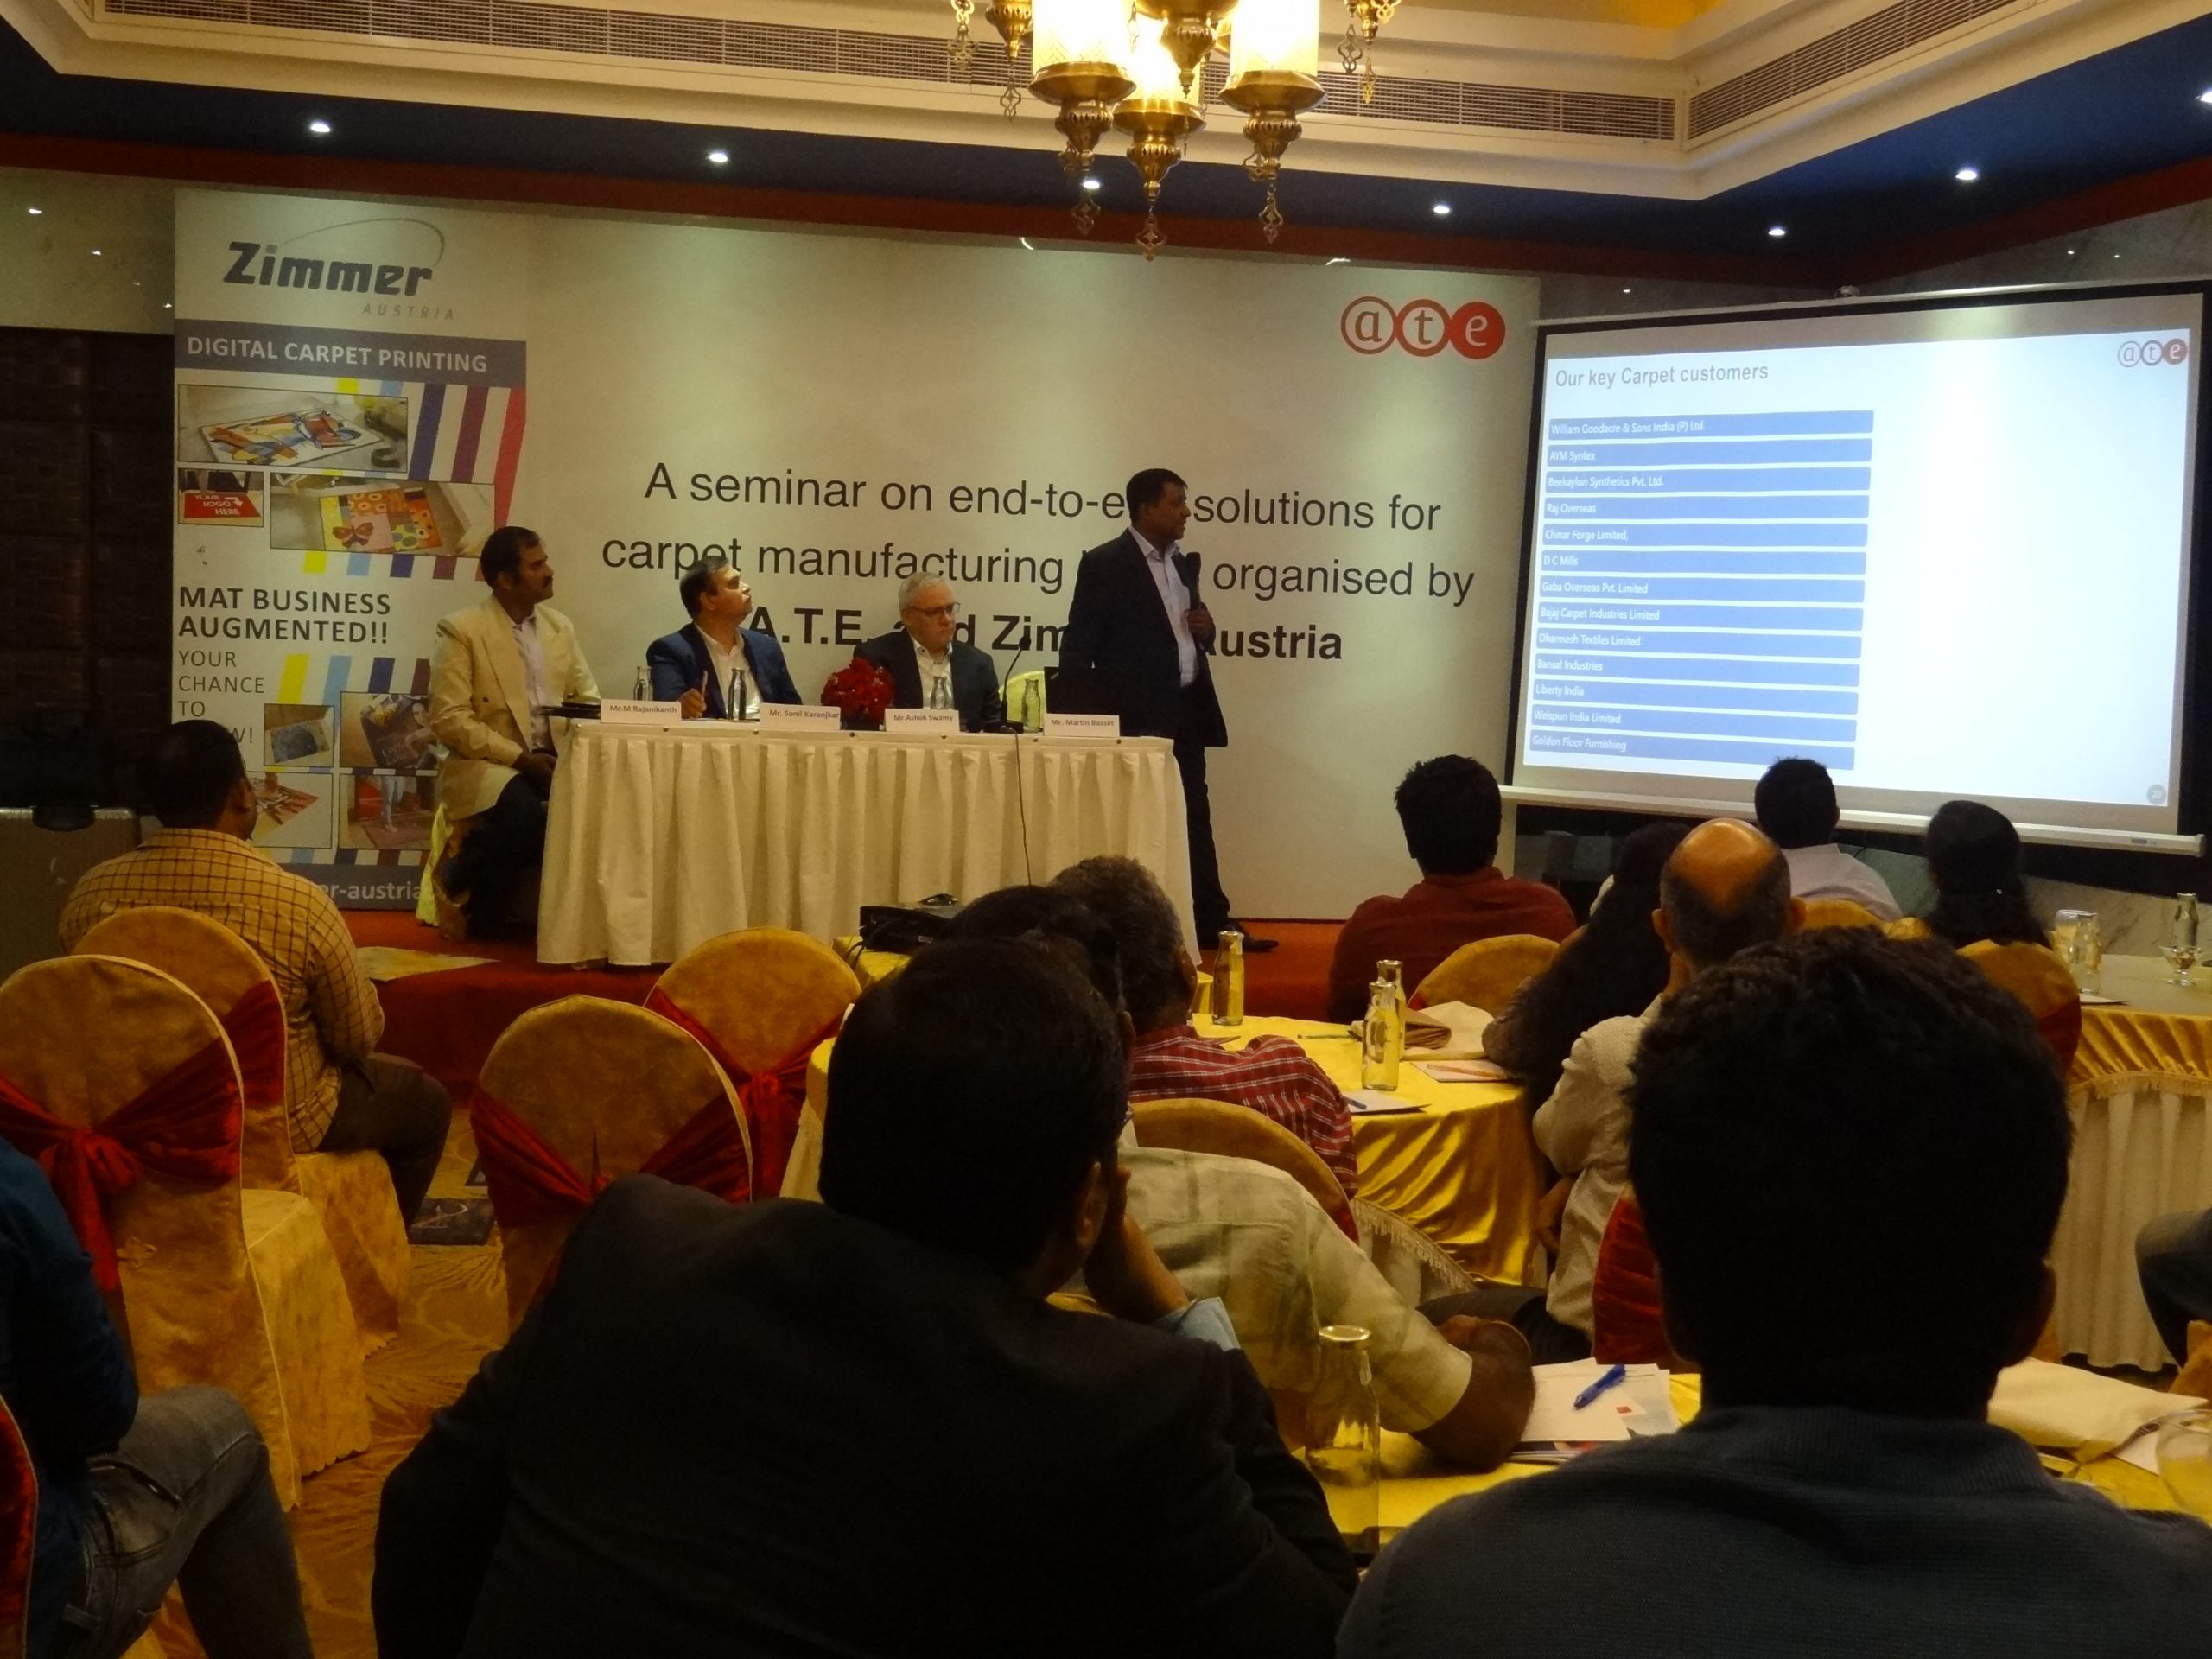 A.T.E. conducts seminar on 'End-to-end solutions for carpet manufacturing' at Alleppey, Kerala